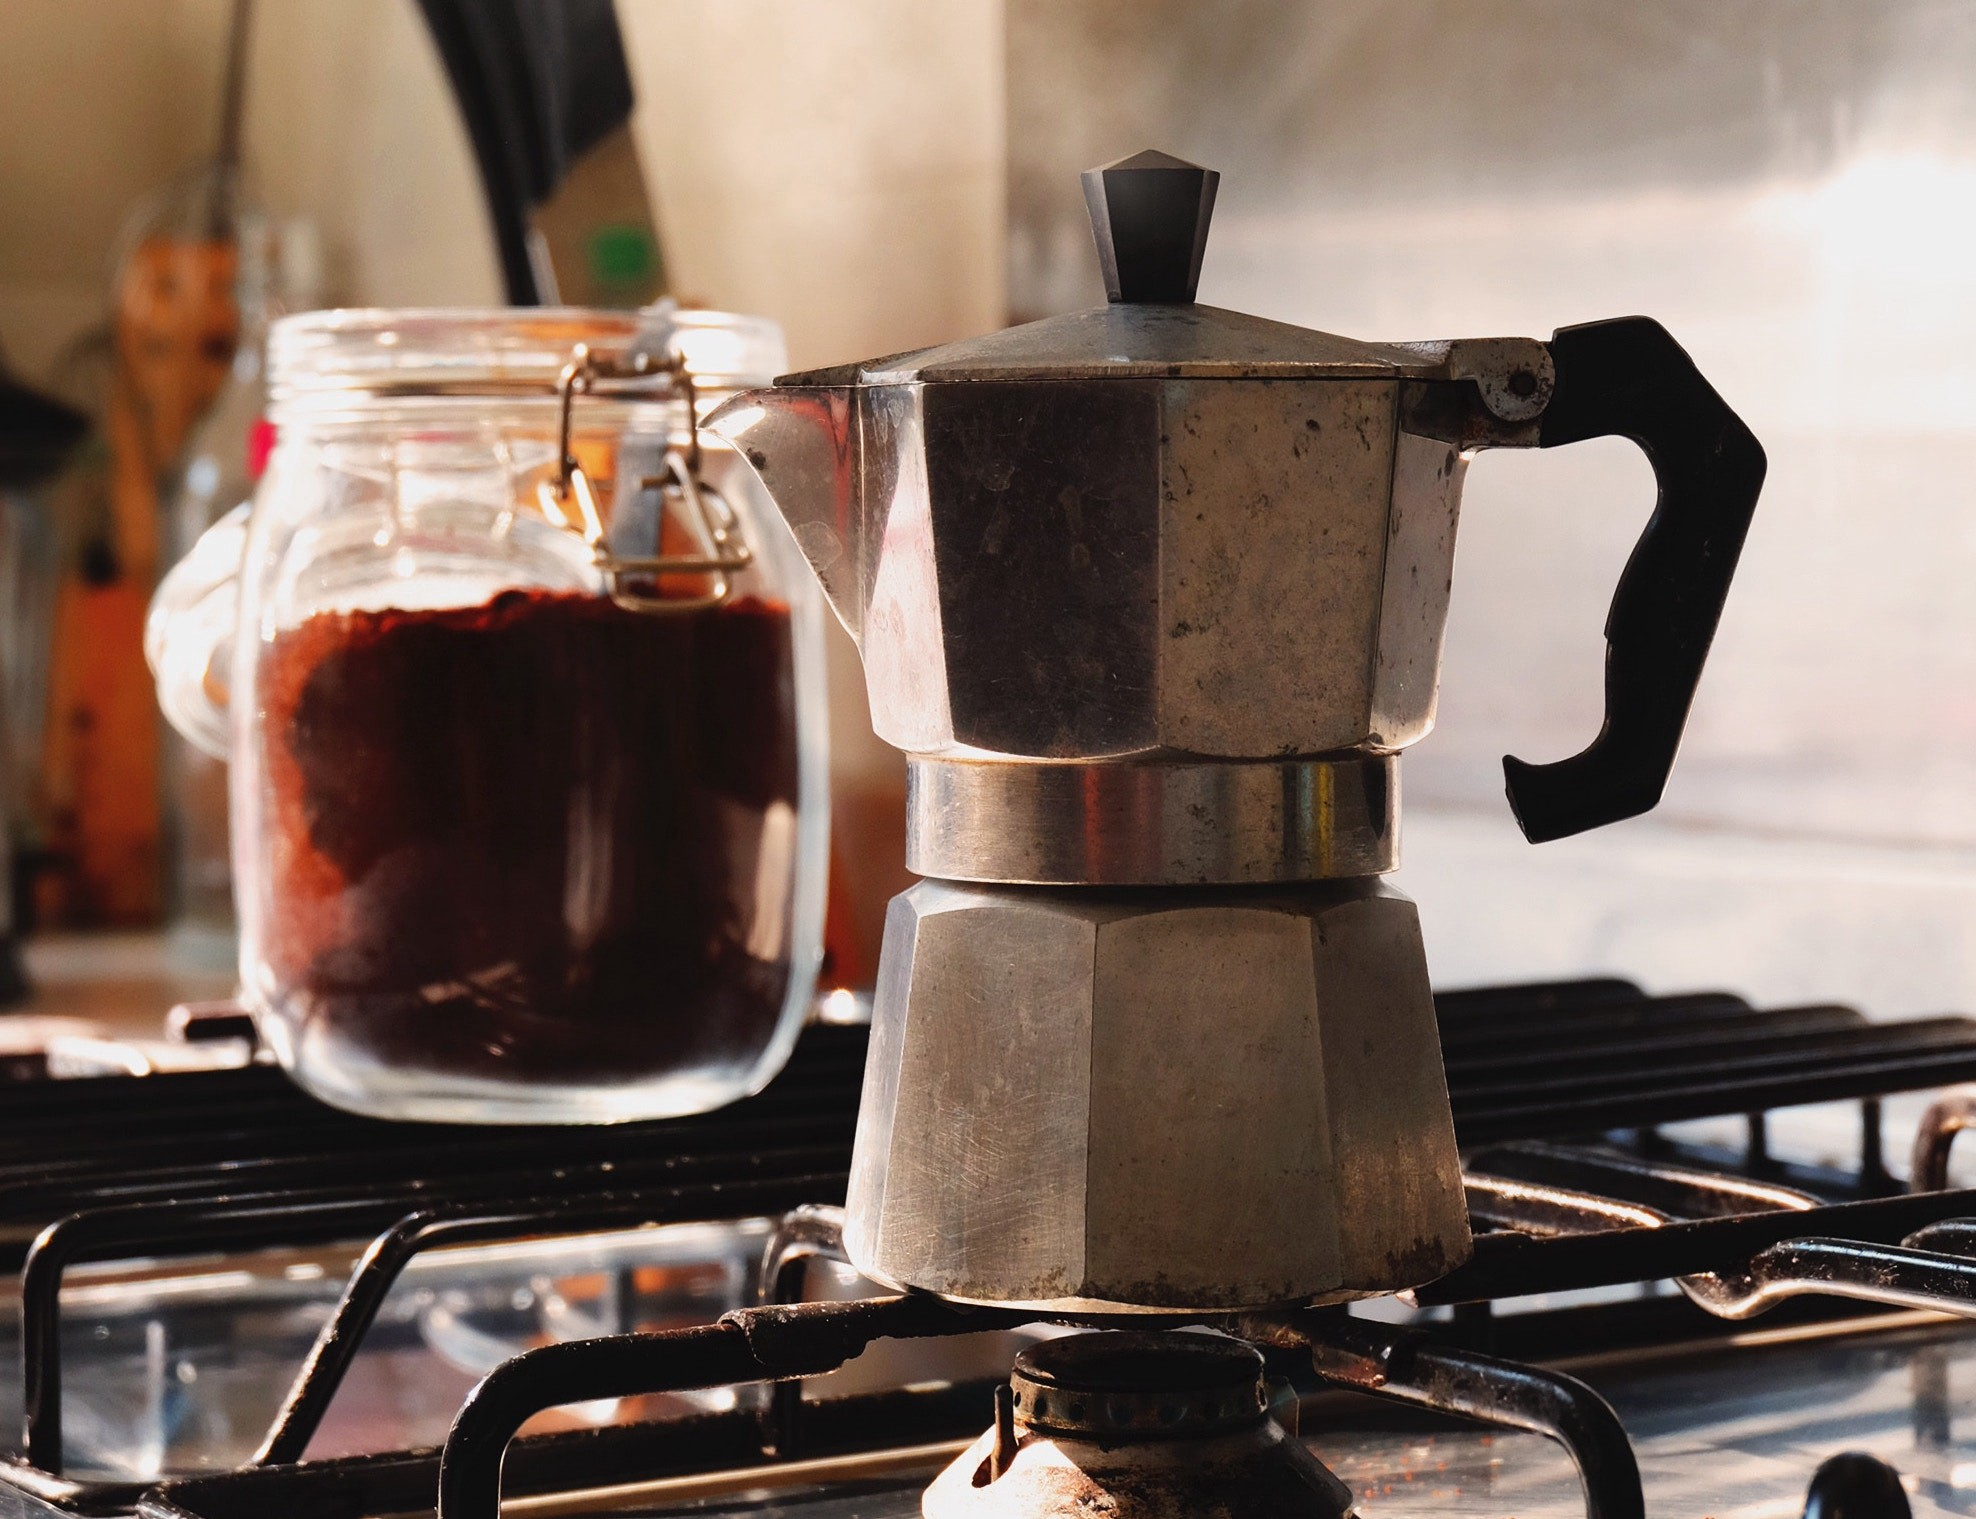 I Ve Always Known It As A Moka Pot That S What My Grandmother And Mother Called Even Though Heard The Bialetti Name Few Times Never Sank In